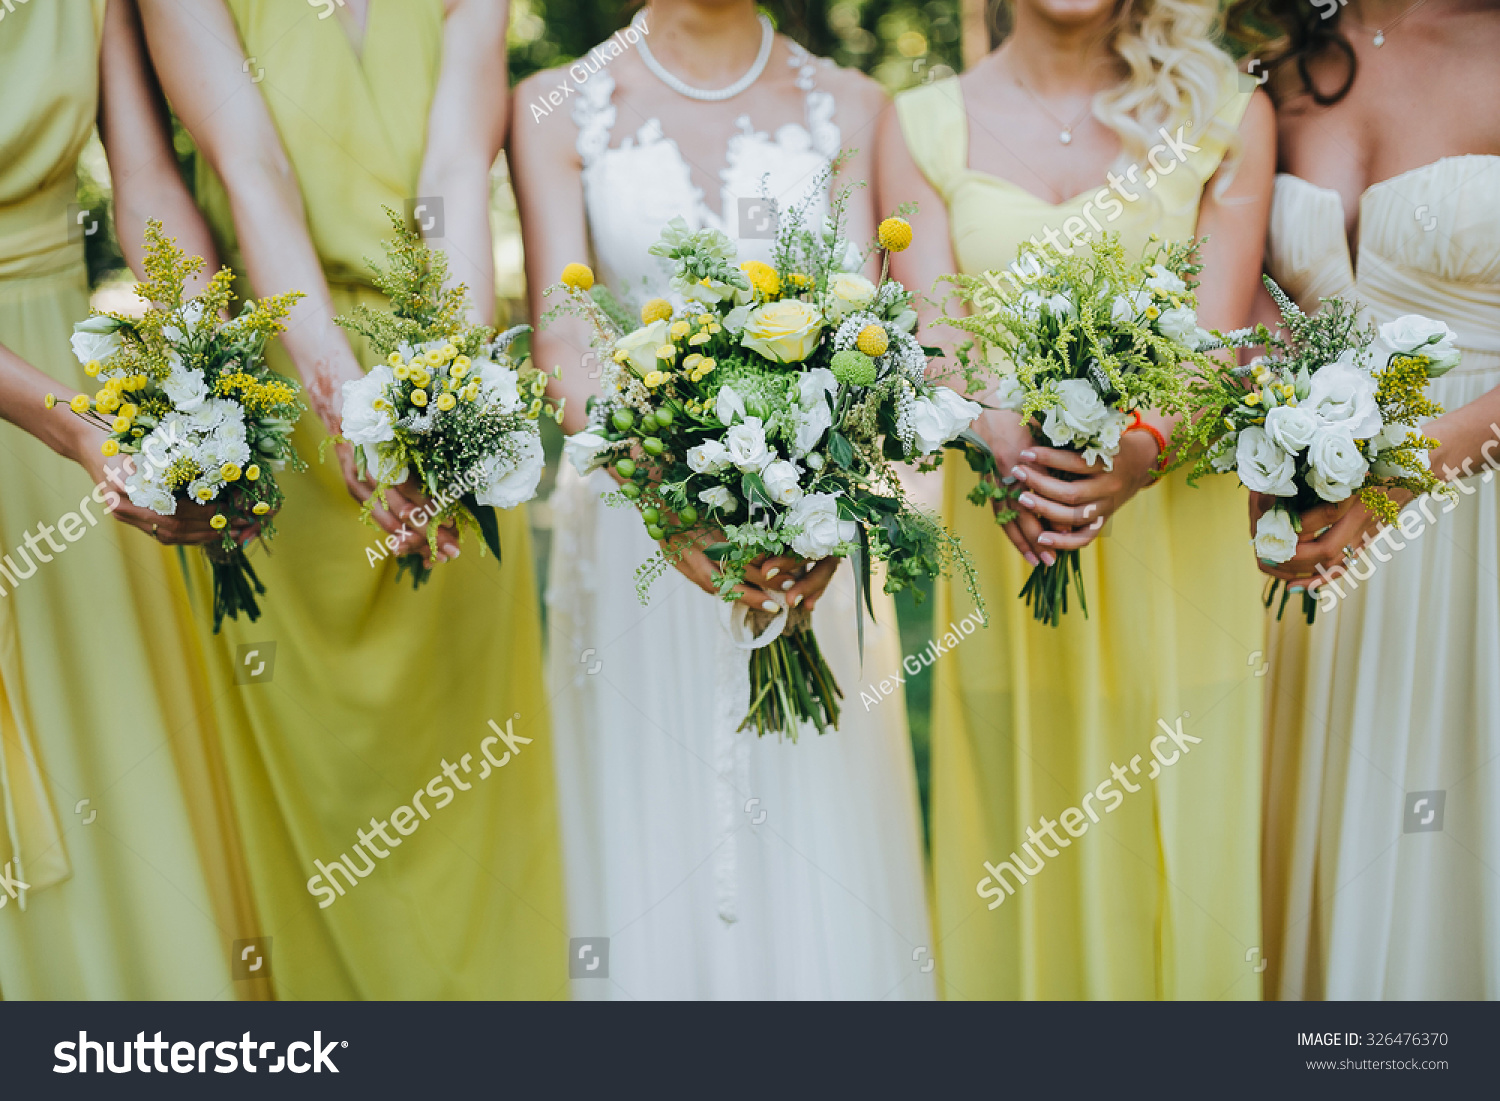 Bride white dress bridesmaids dresses yellow stock photo 326476370 bride in a white dress and bridesmaids dresses are yellow and are holding bouquets of yellow ombrellifo Choice Image